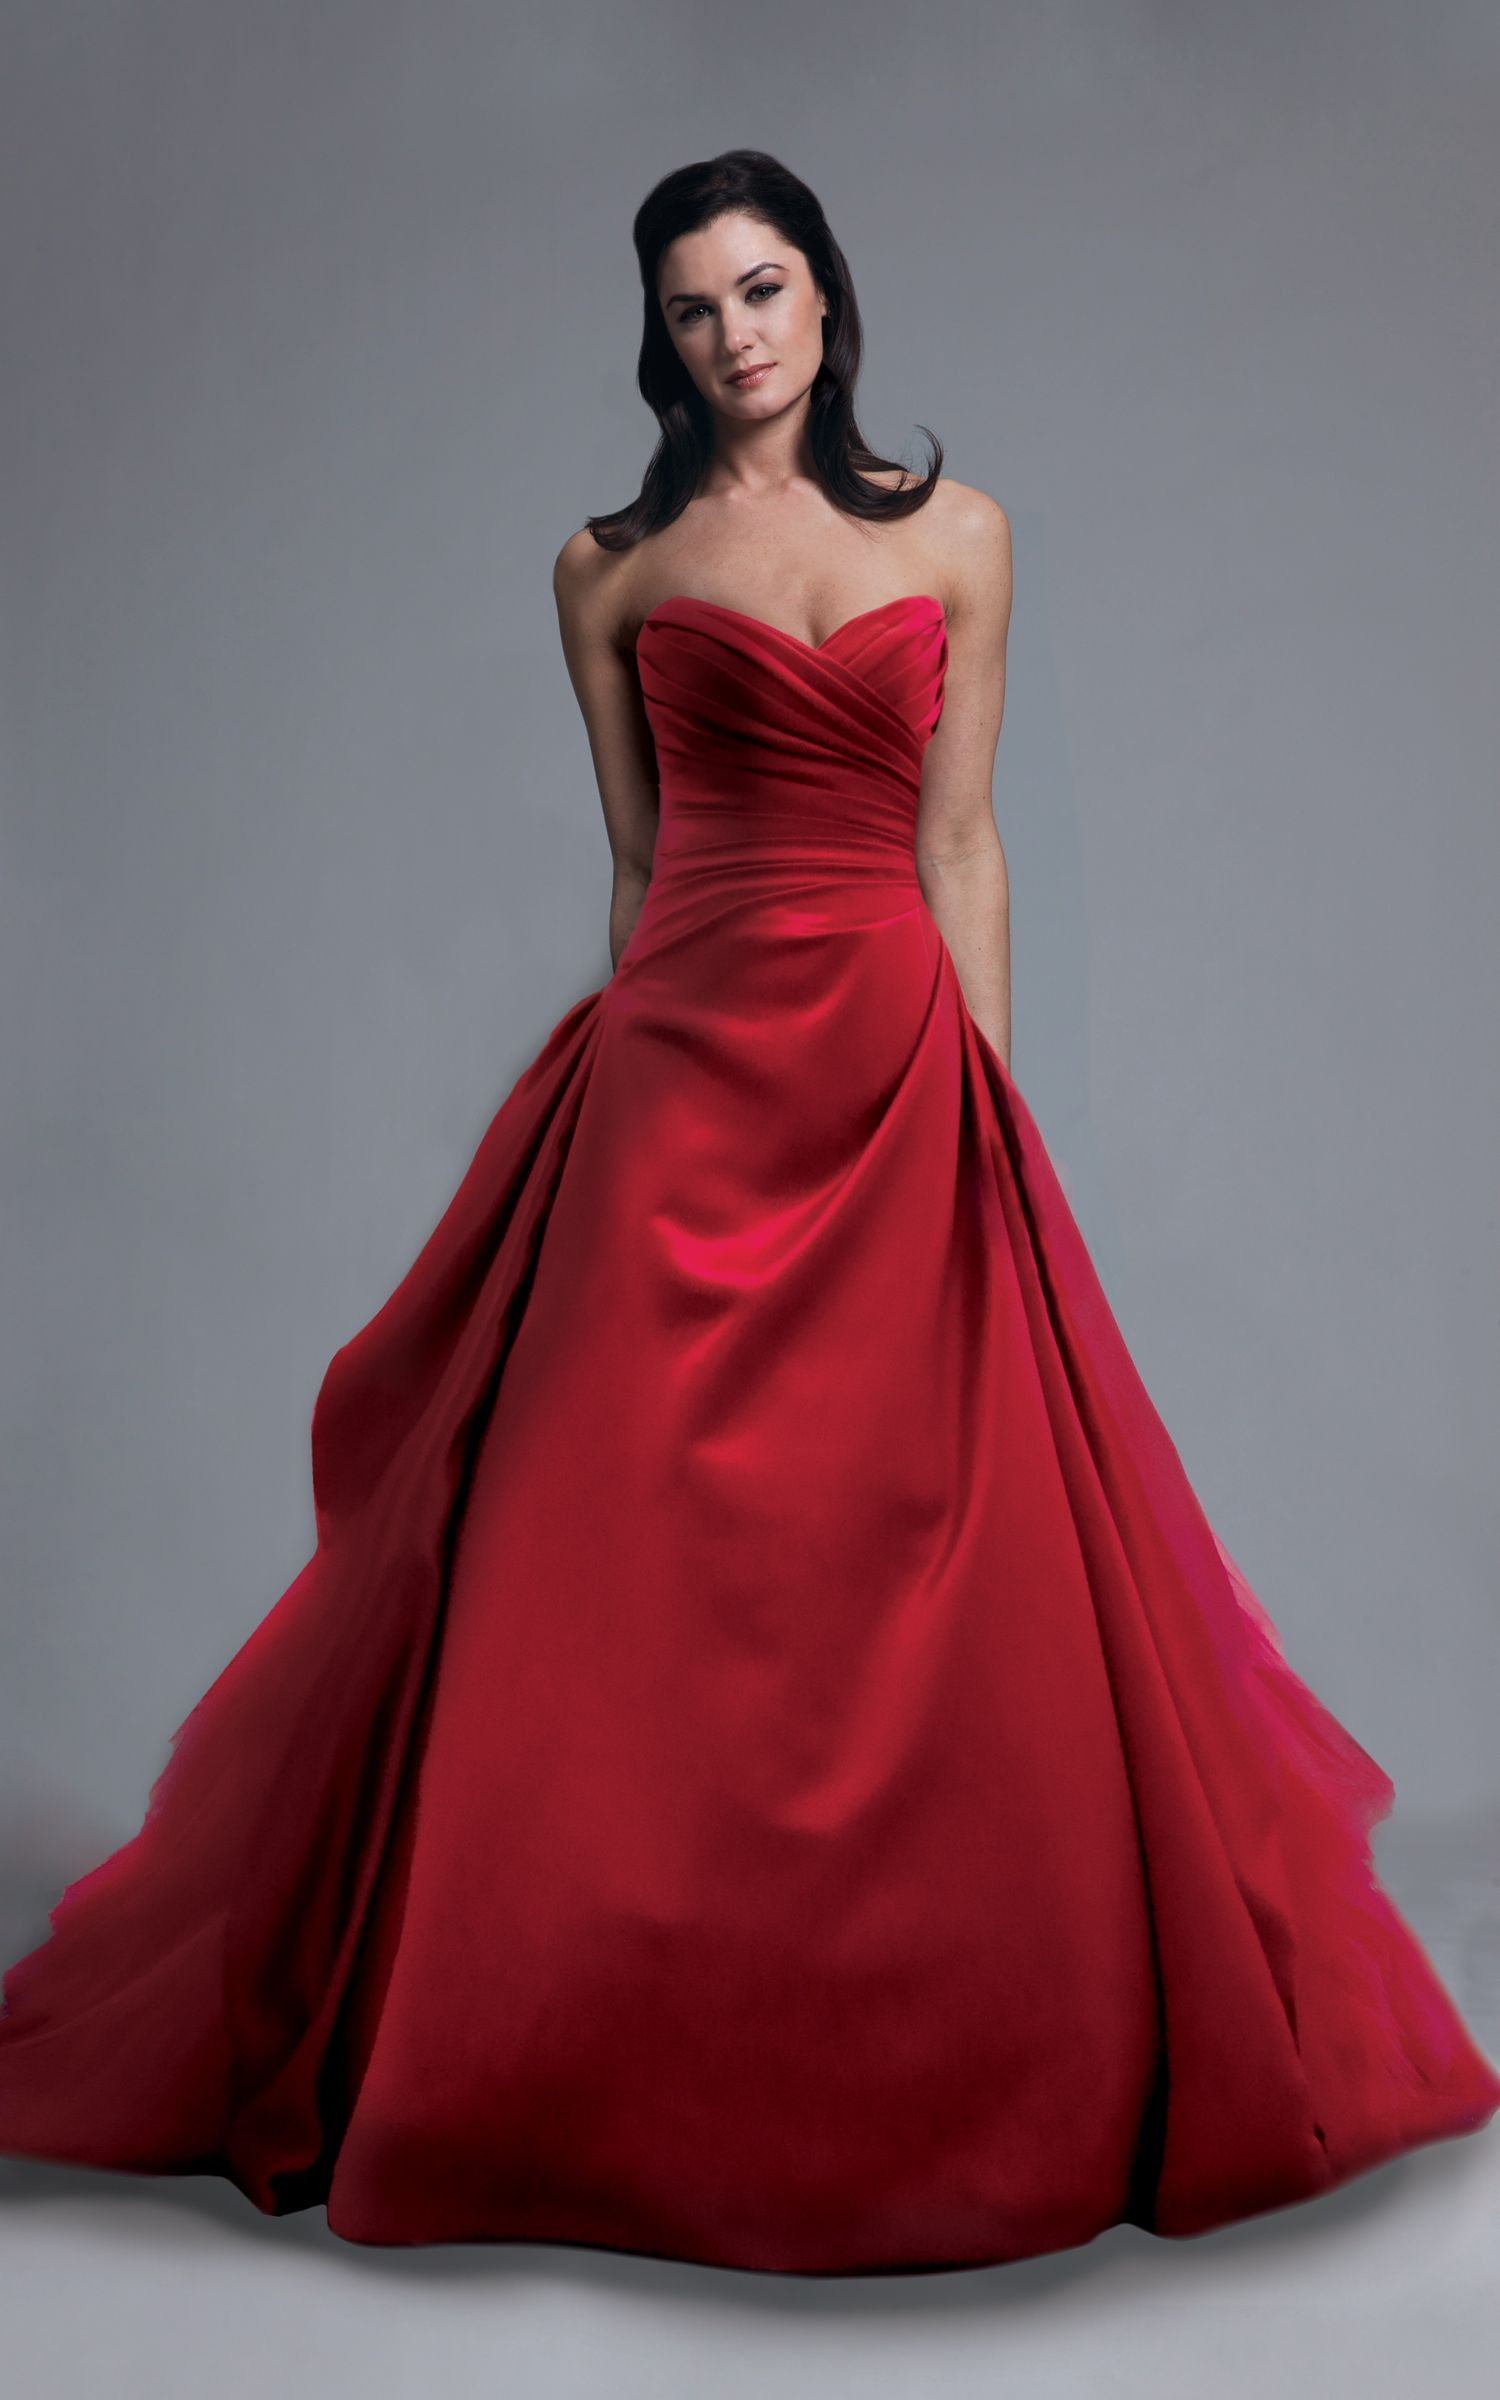 a-lined, ballgown, bridal gowns, color, dramatic, red, sweetheart ...